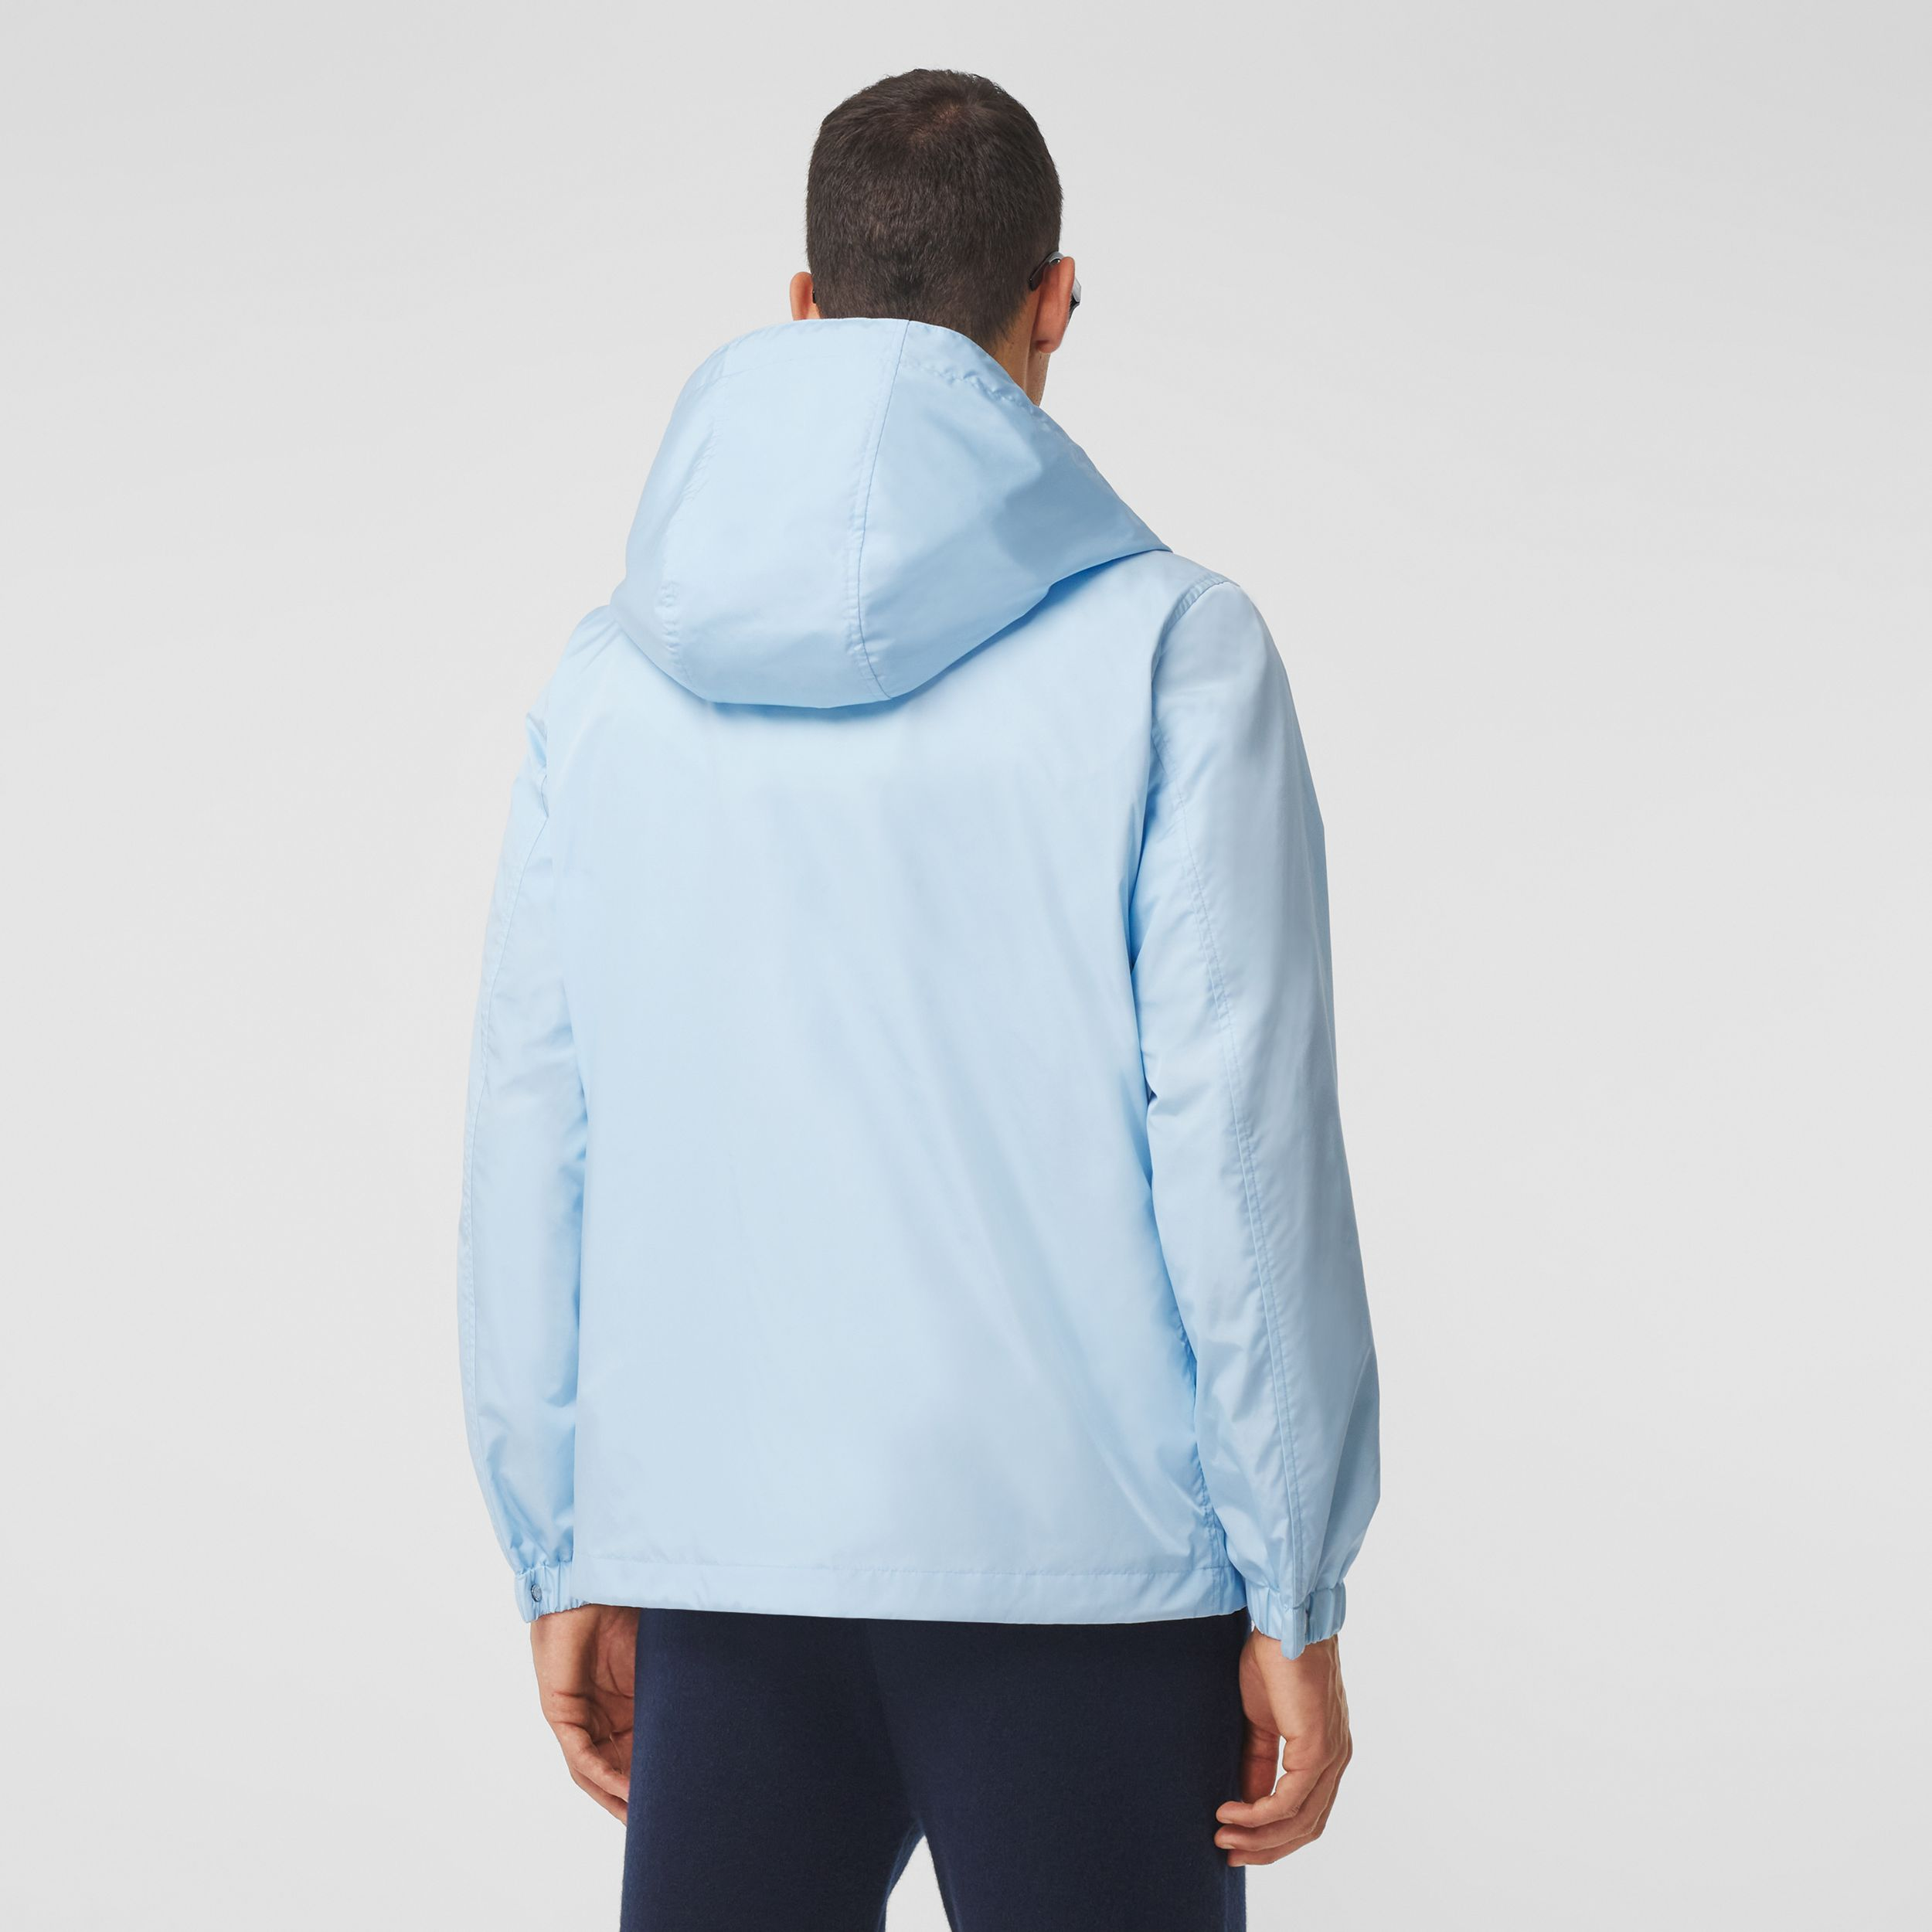 Montage Print ECONYL® Hooded Jacket in Pale Blue - Men | Burberry - 3